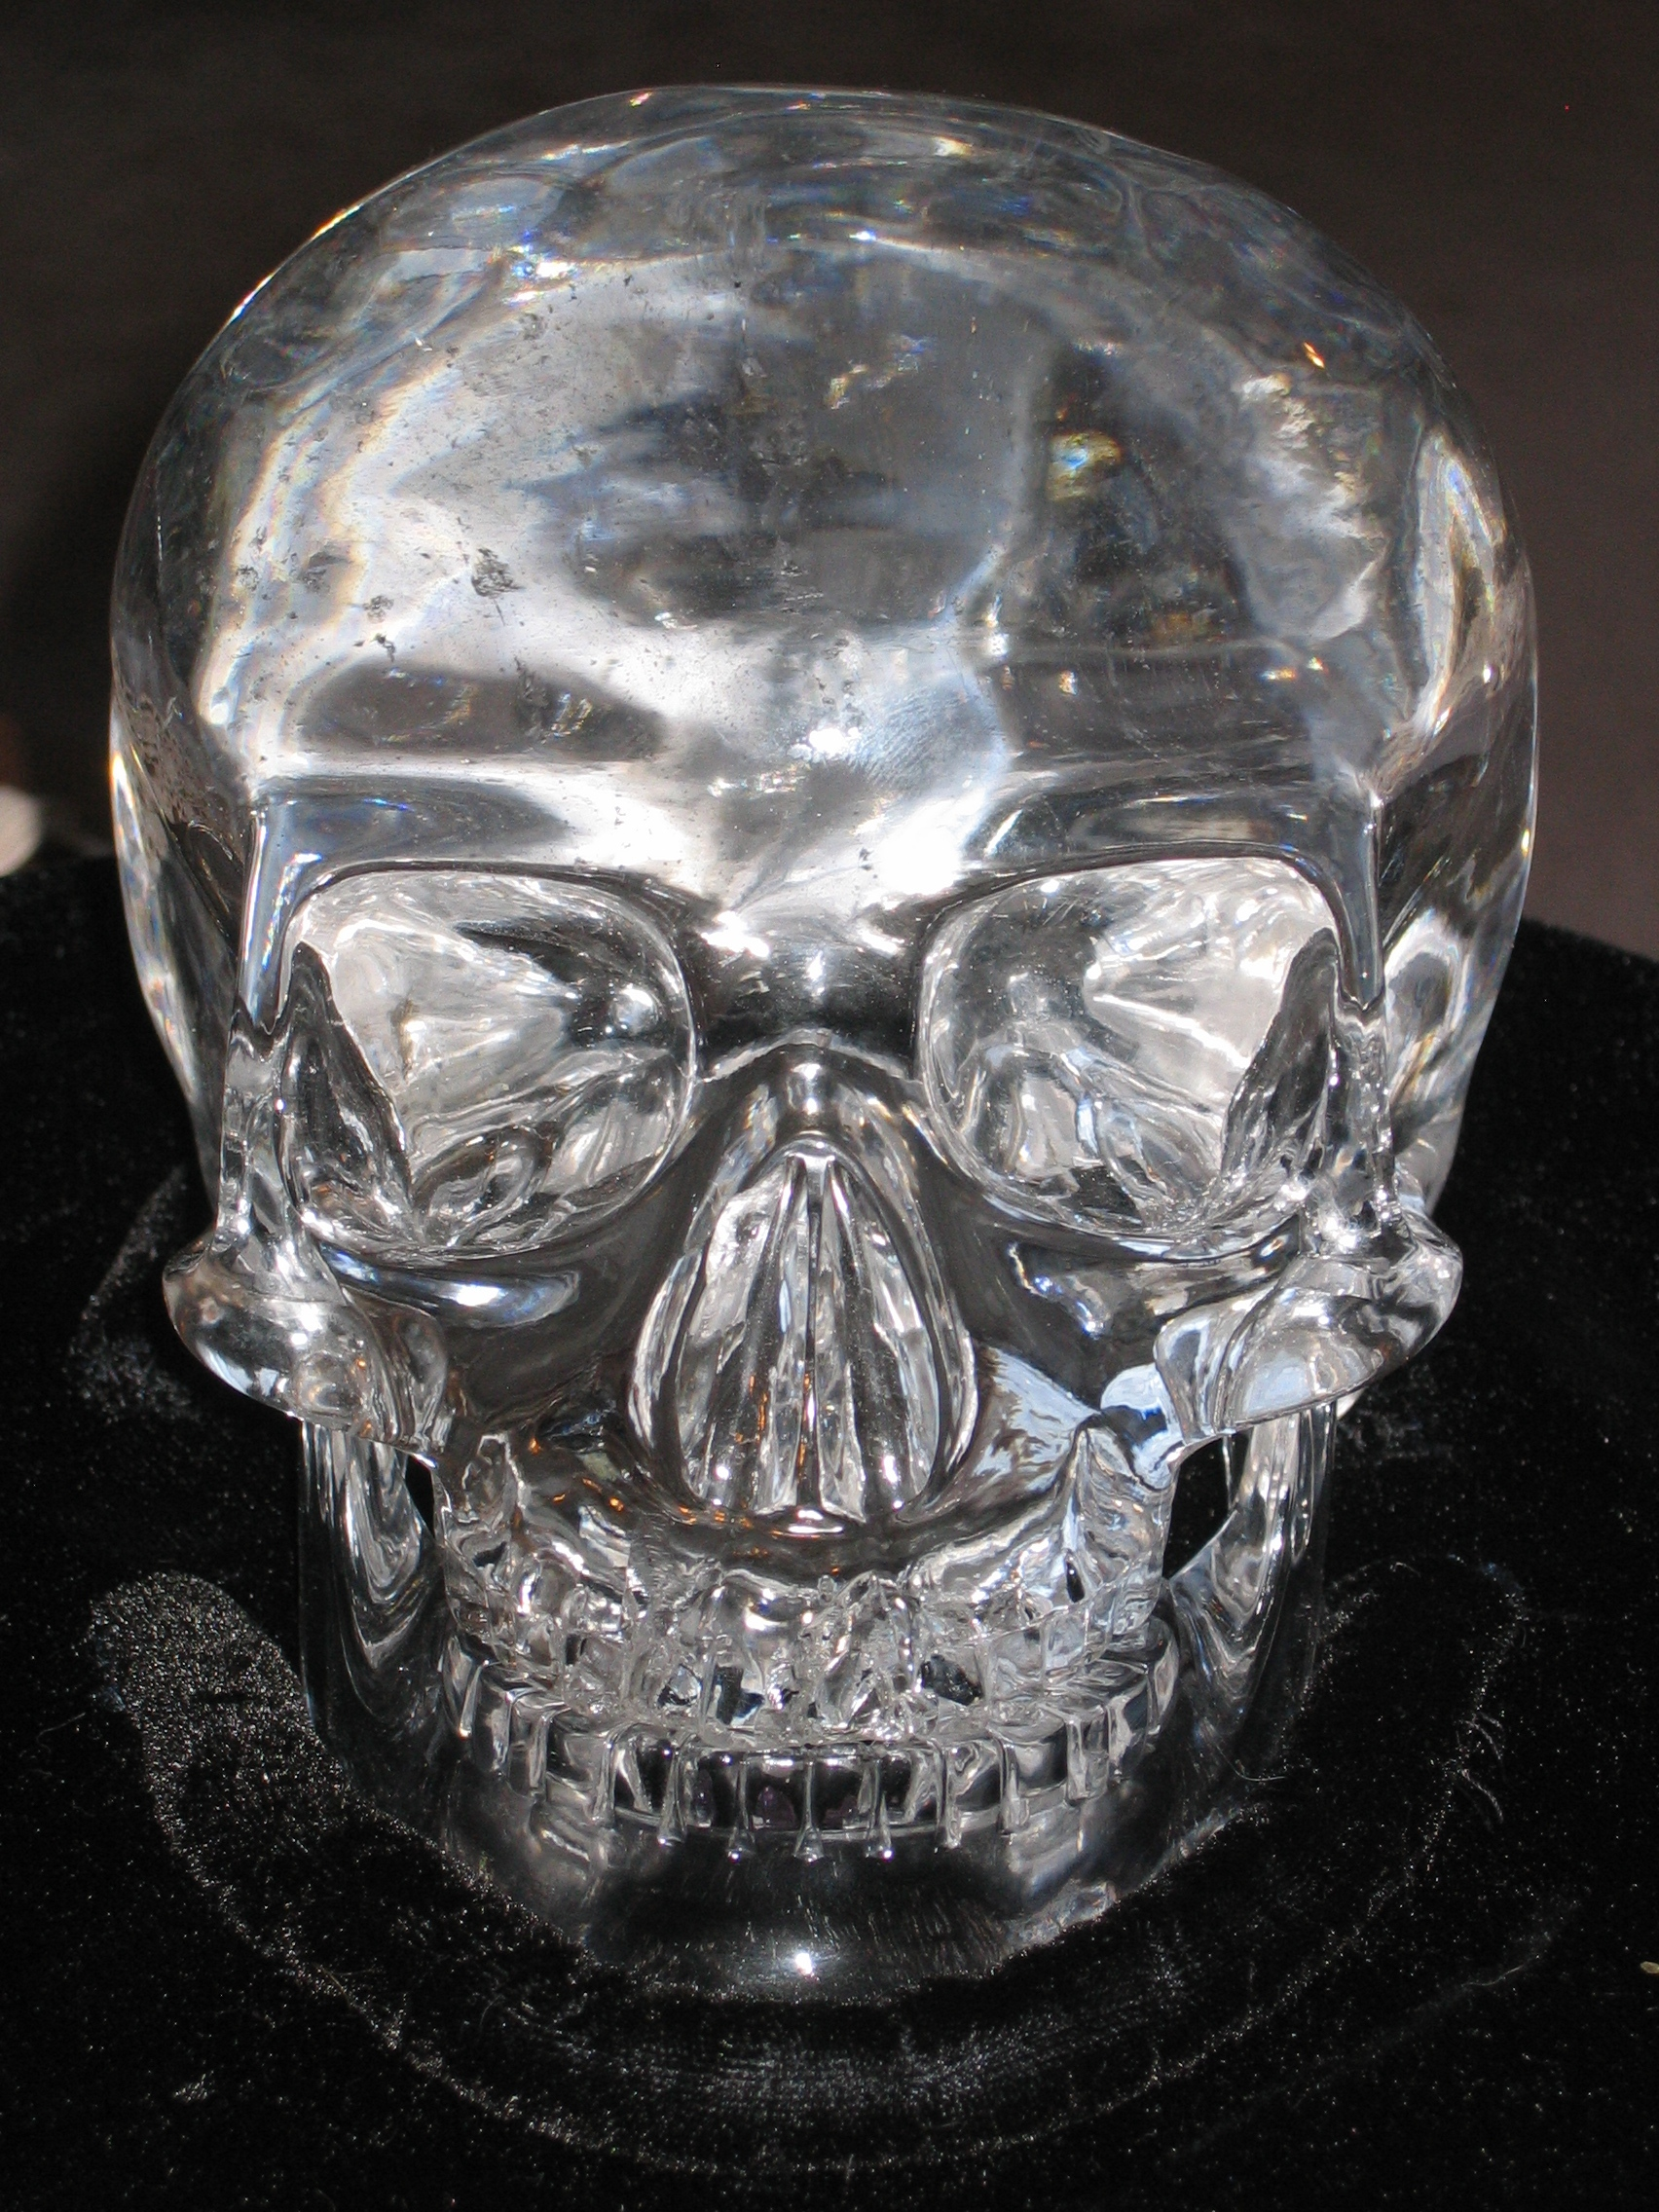 Mitchel_Hedges_Crystal_Skull (1).jpg